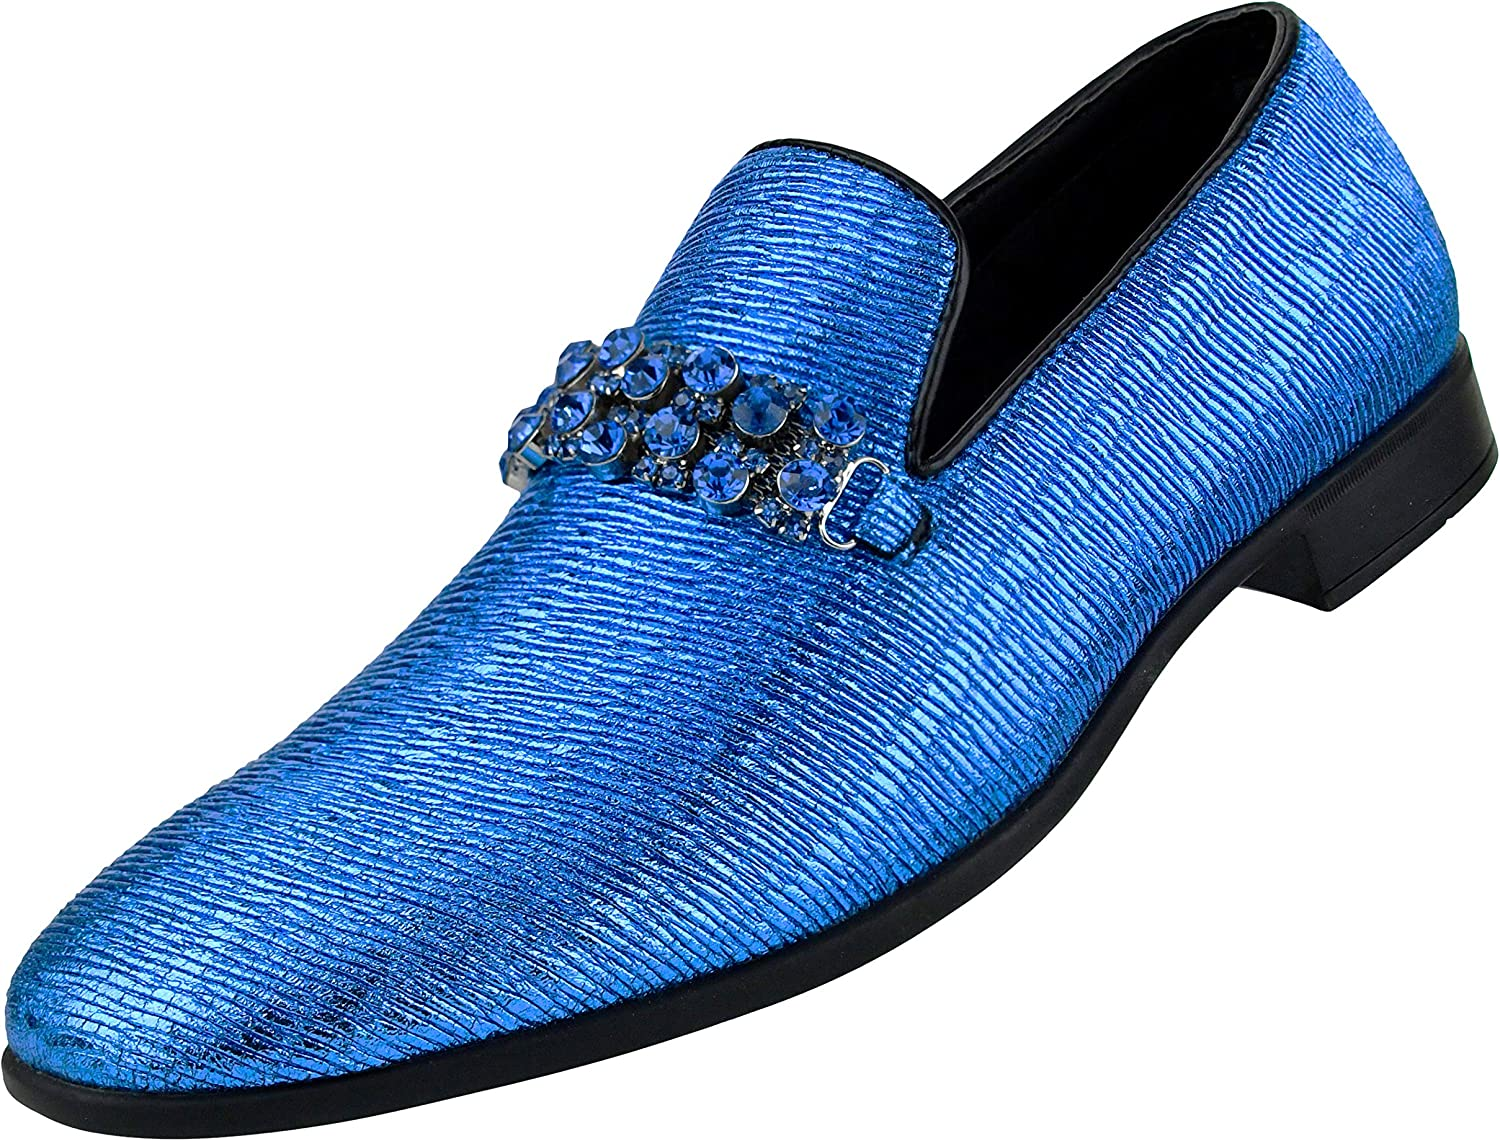 Amali Kaleido, Men's Slippers - Loafers for Men - Mens Shoes Slip On - Tuxedo Shoes - Mens Casual Shoes - Smoking Slipper with Rhinestone Bit